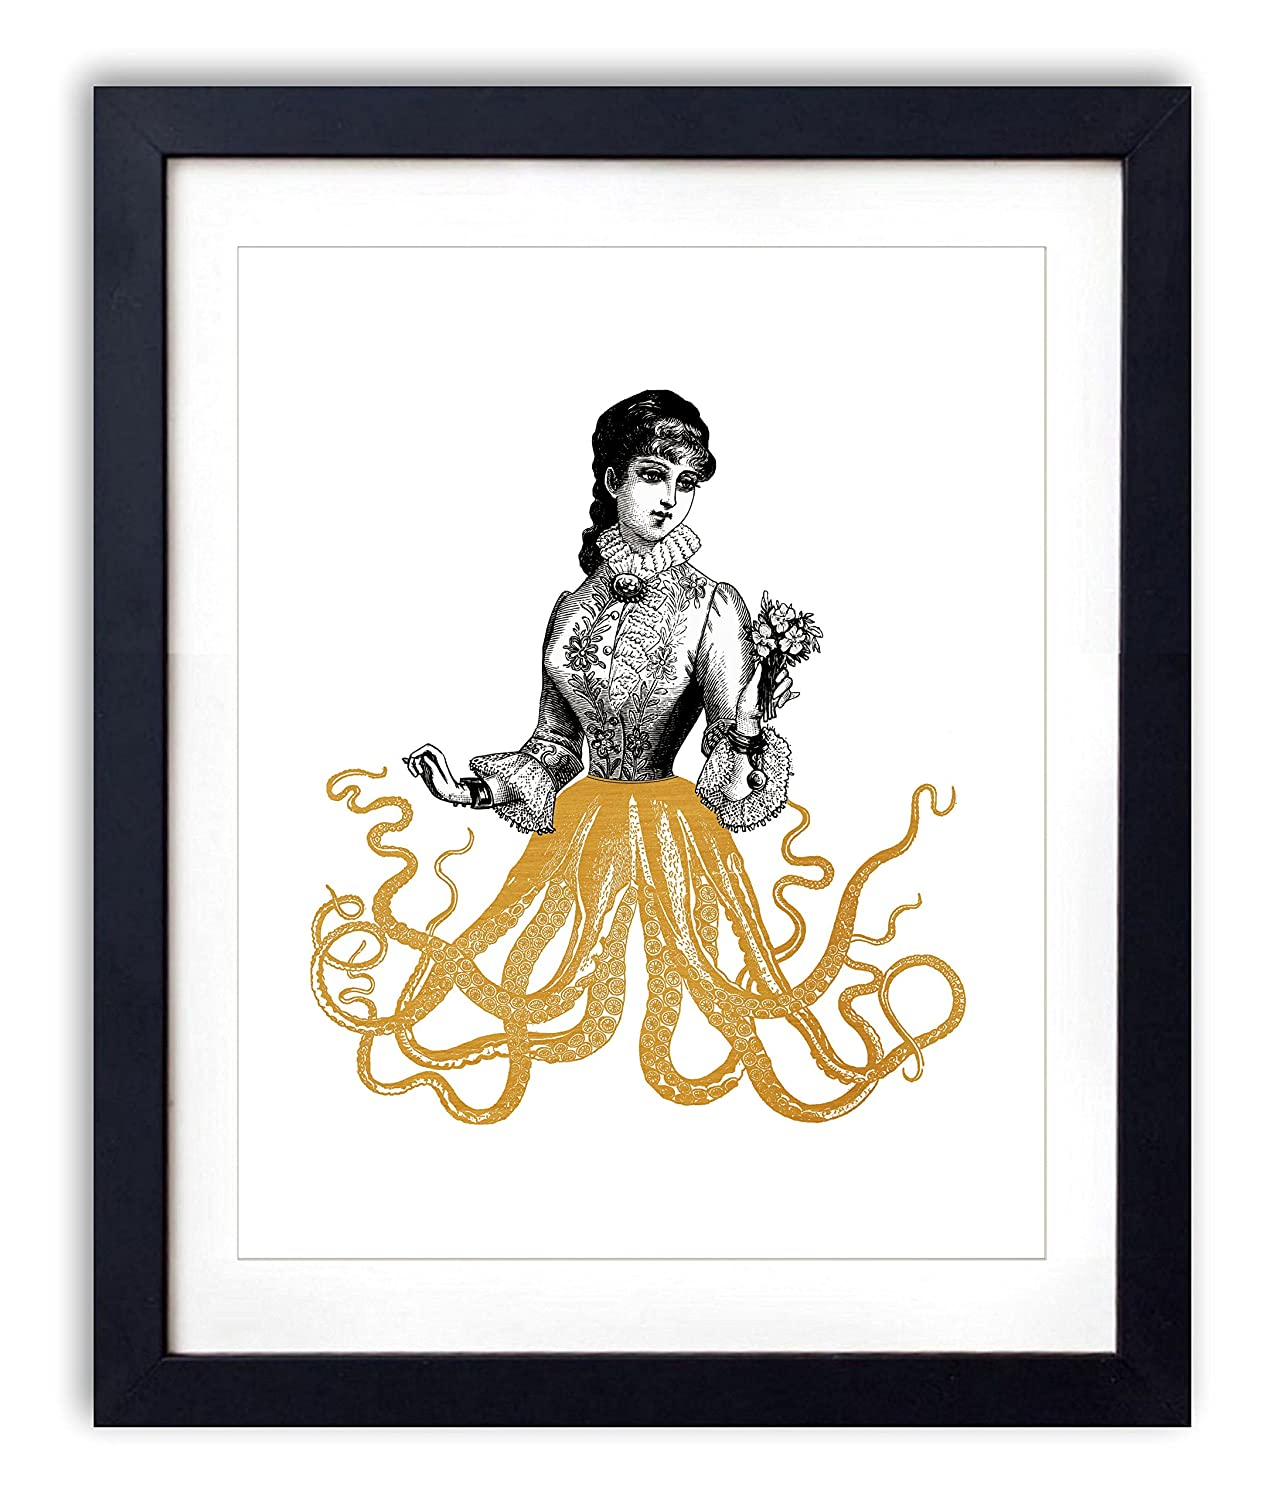 Gold Foil - Victorian Octopus Lady Upcycled Wall Art Vintage Dictionary Art Print 8x10 inches / 20.32 x 25.4 cm Unframed